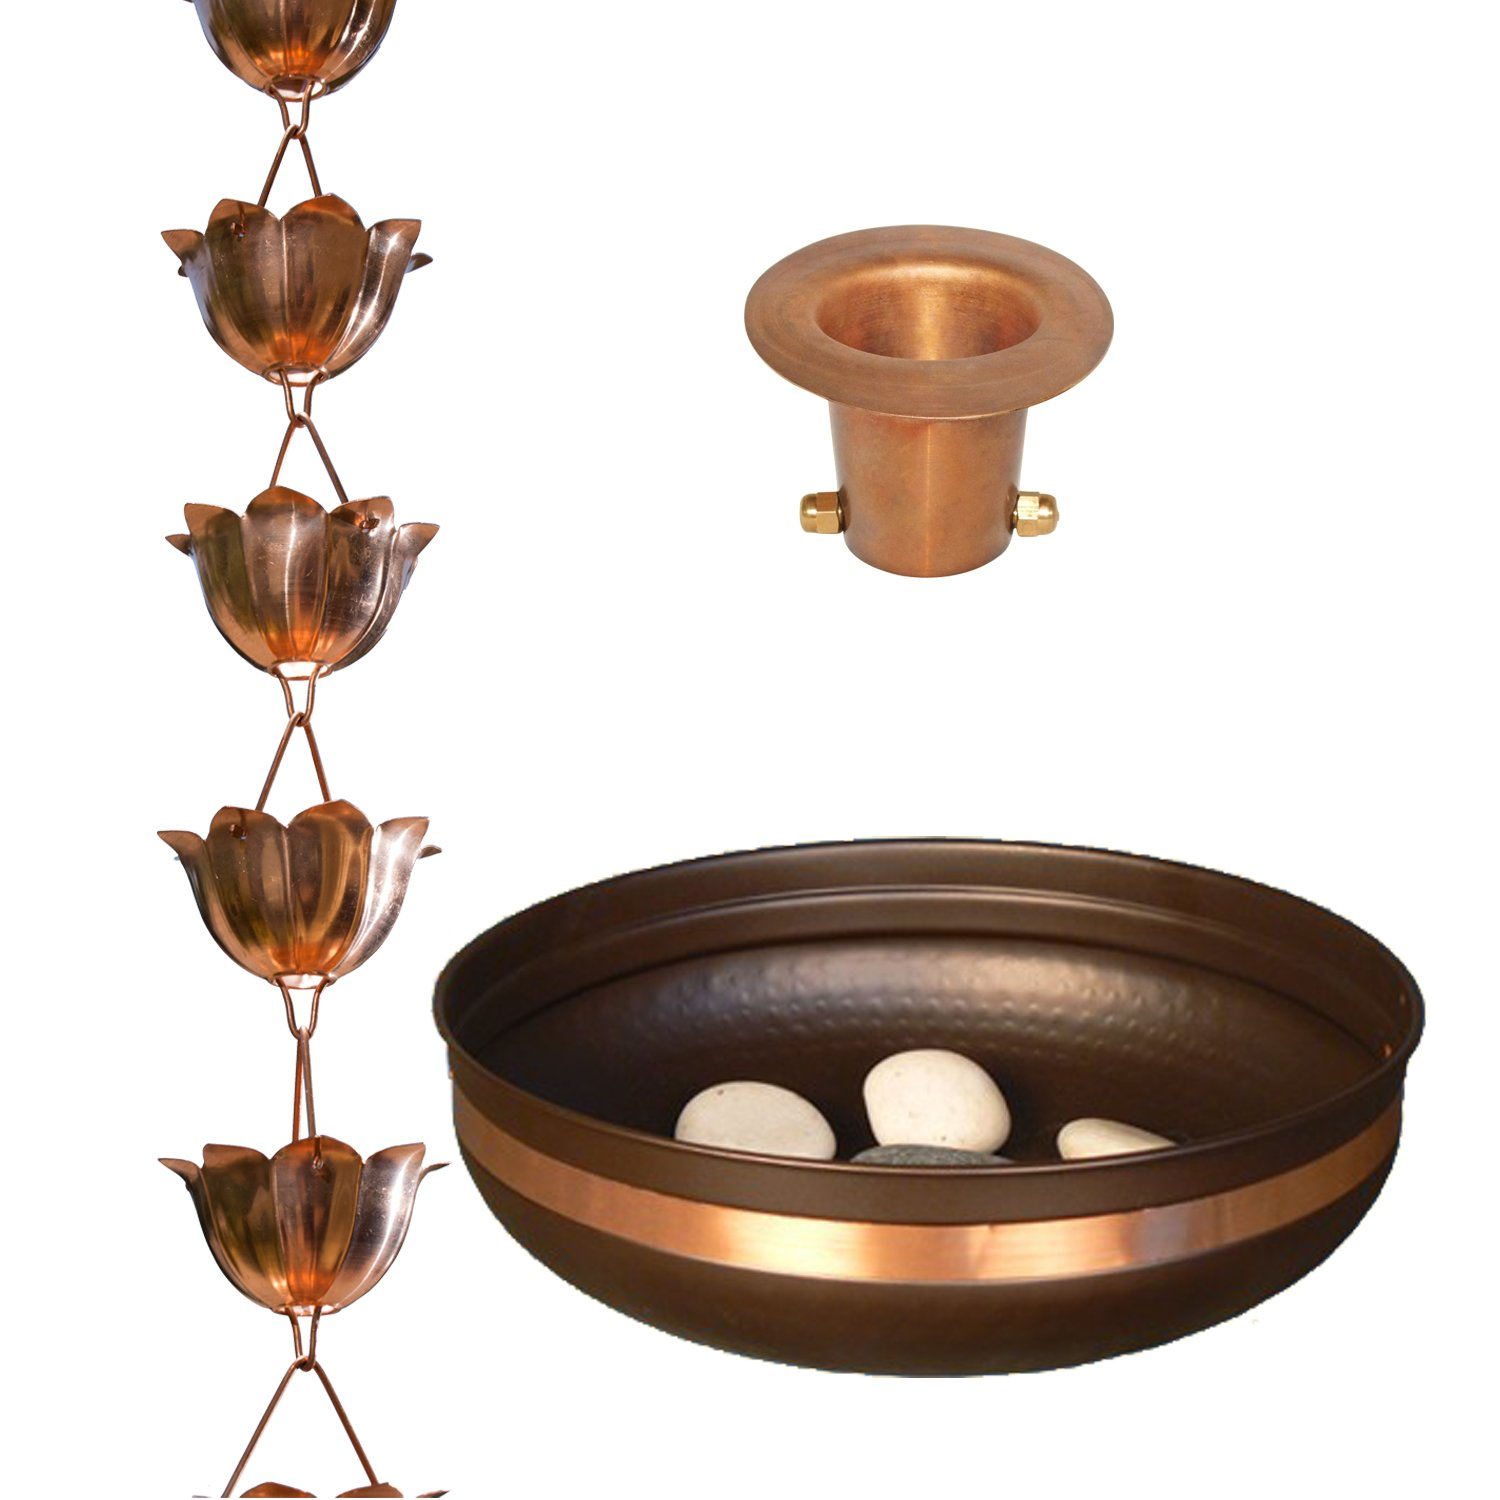 Monarch Pure Copper Lotus Rain Chain Bundle (with Copper Banded Mild Steel Basin and Copper Gutter Reducer for Installation)